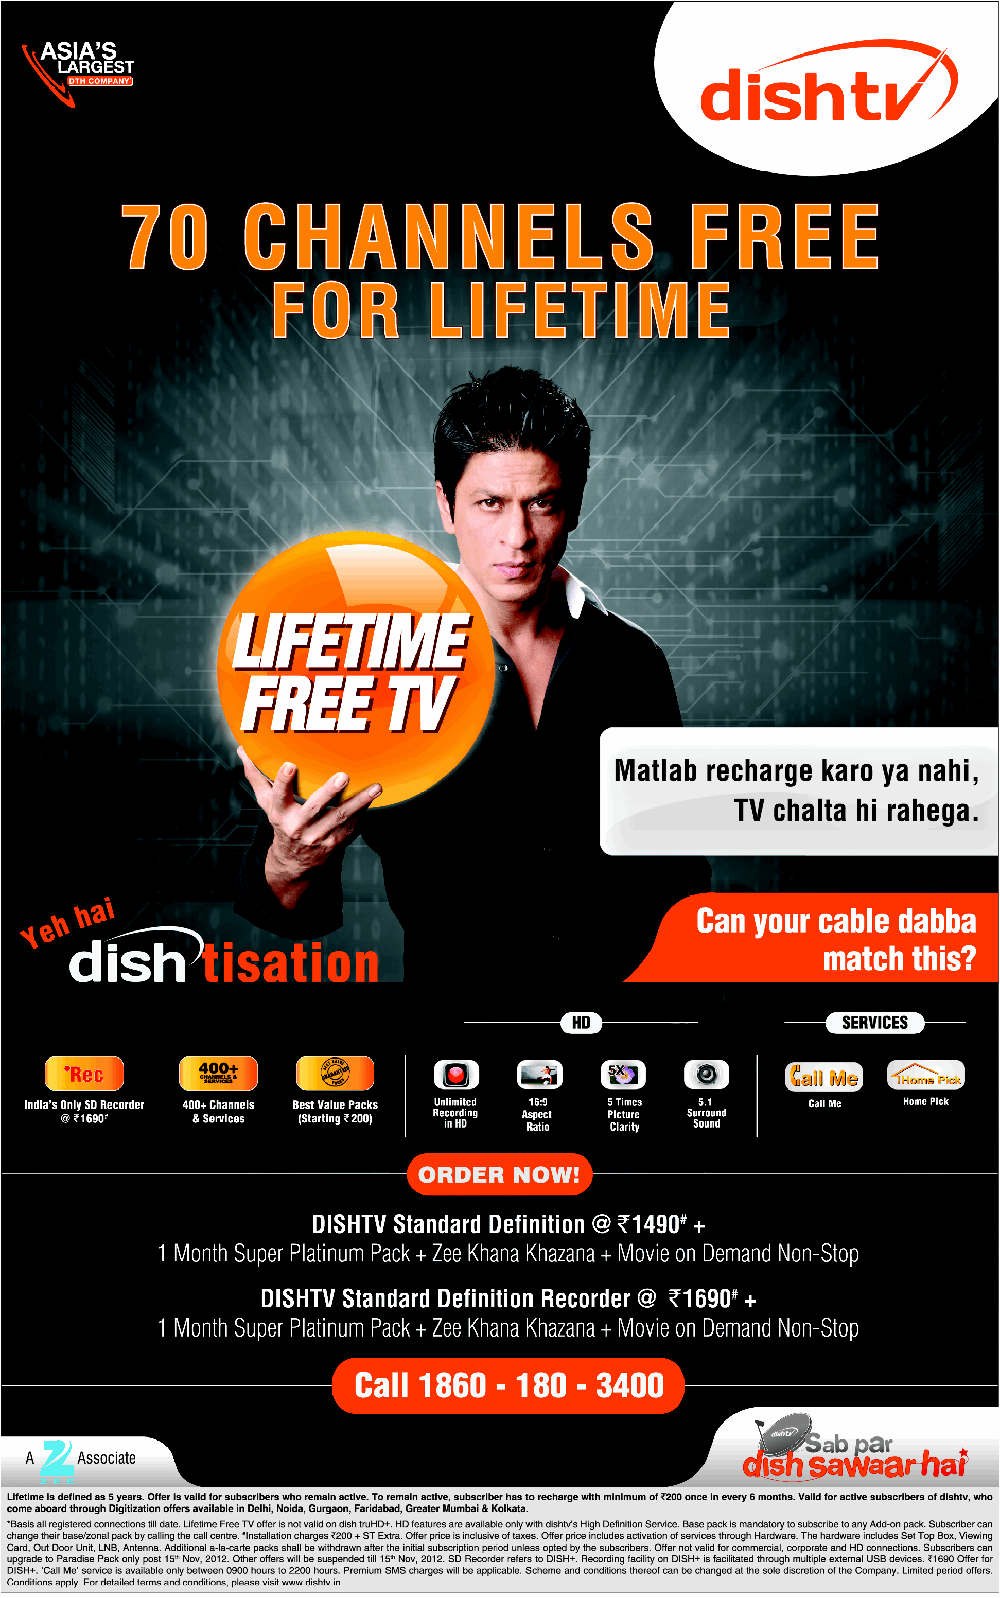 Dish TV - Lifetime Free TV